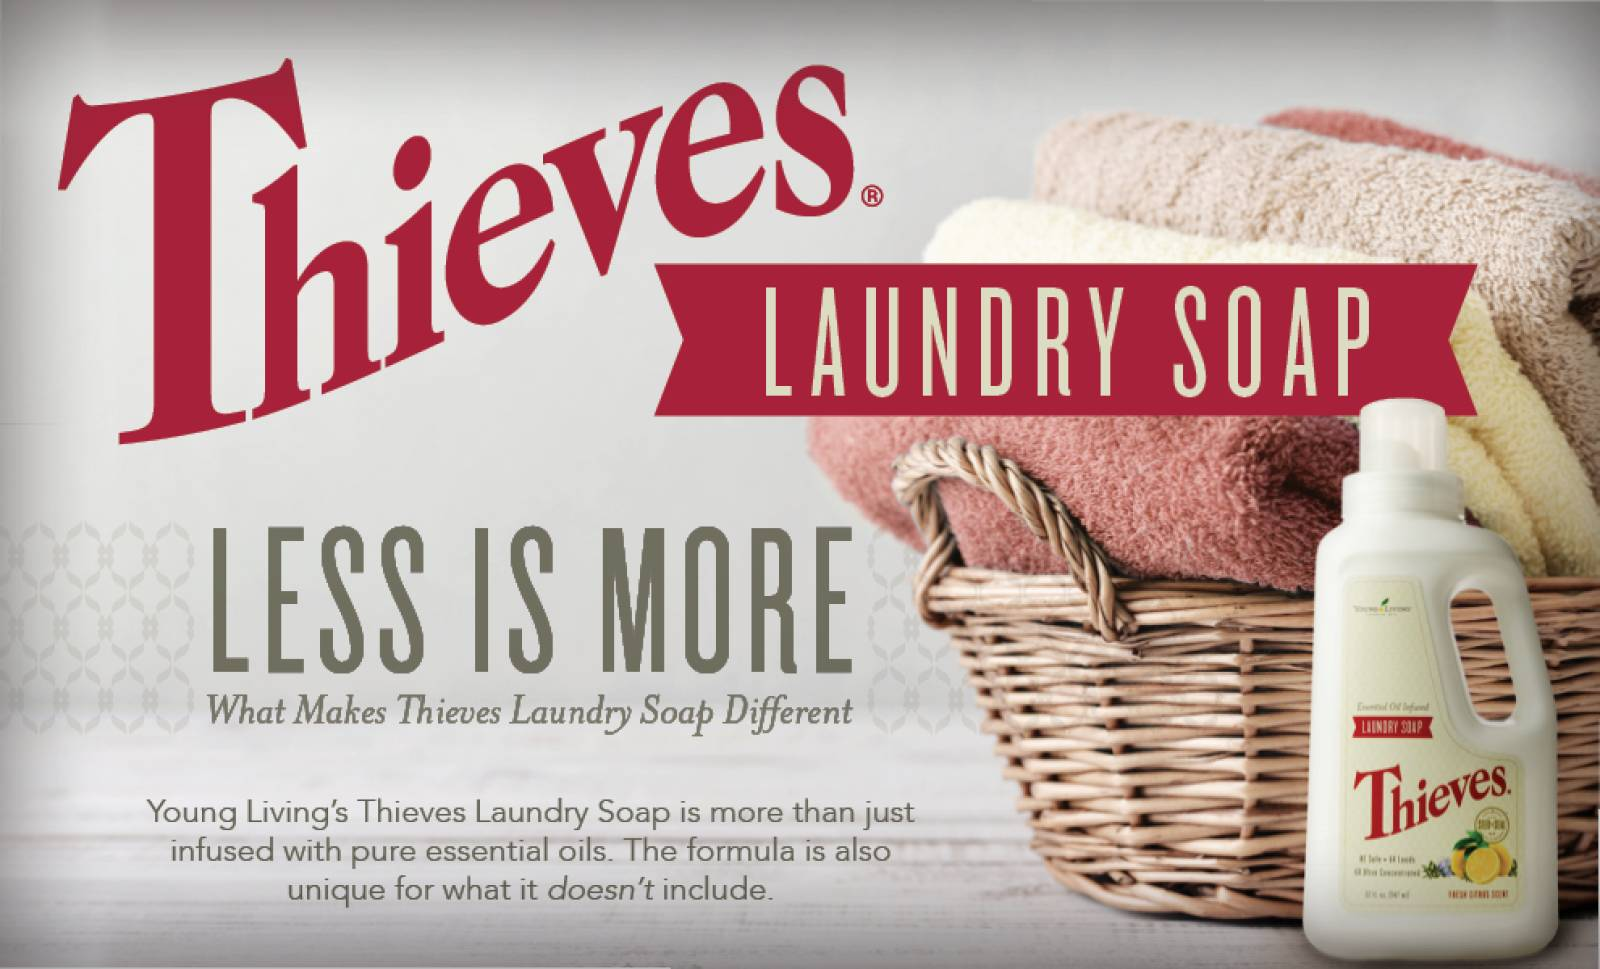 Economical Choices Continued with Thieves Laundry Soap